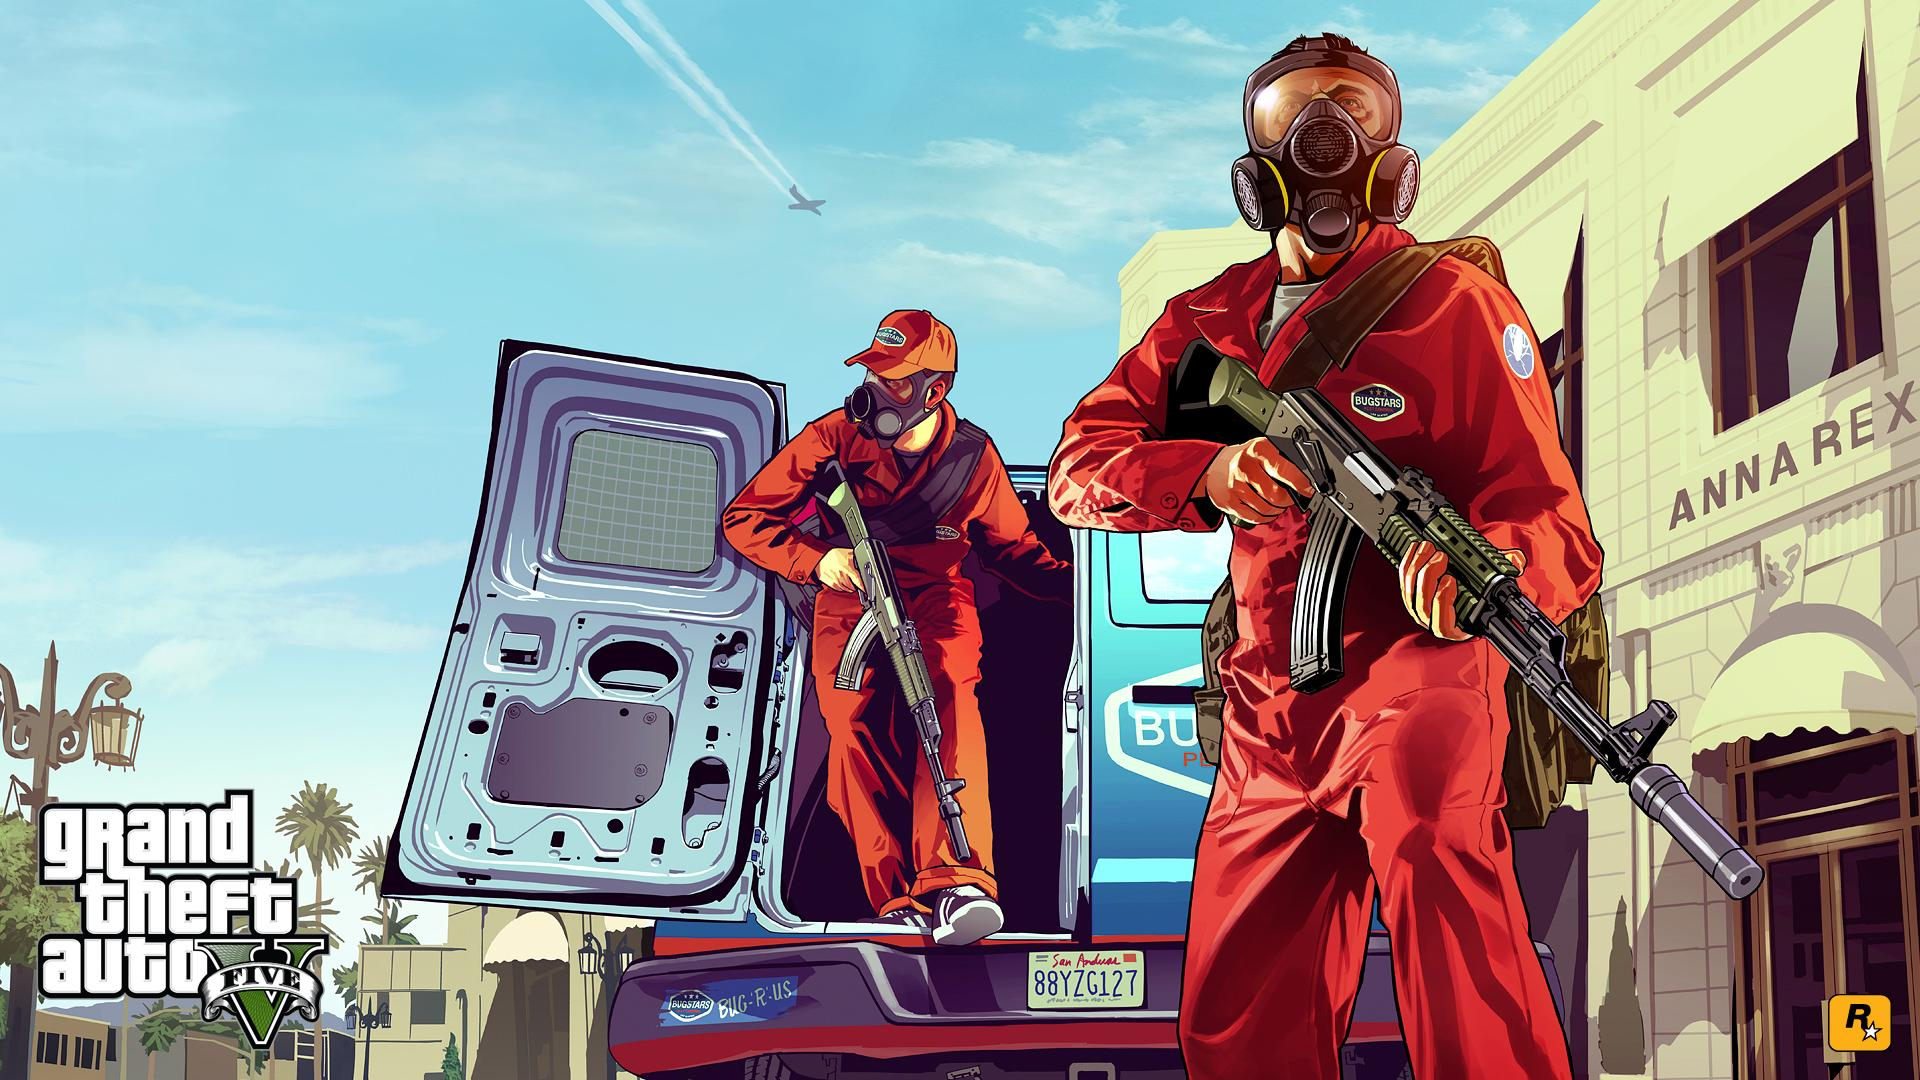 'GTA IV' Oddly Delisted On Steam